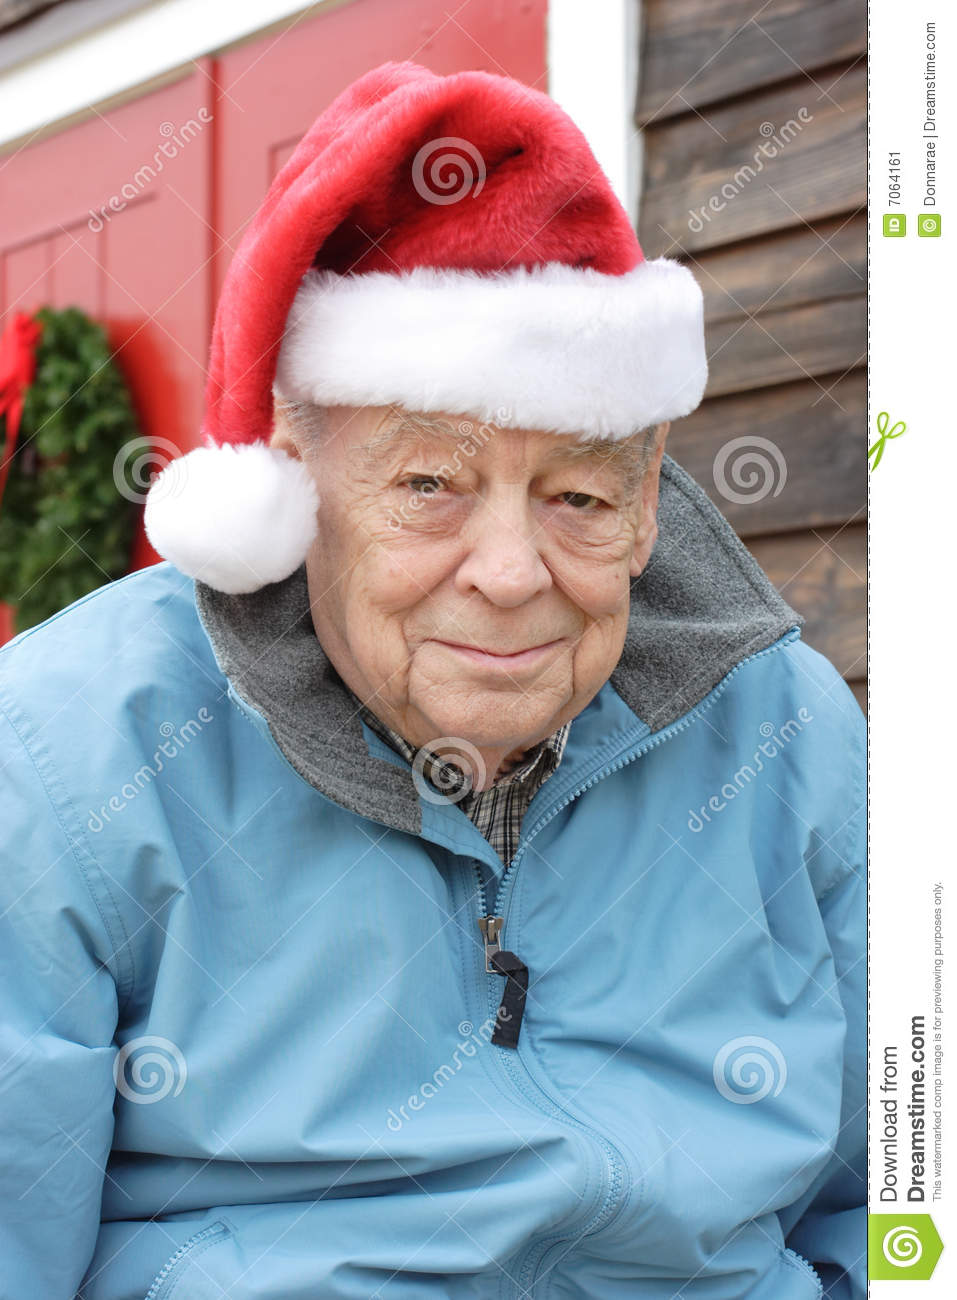 Senior Christmas Gifts: Seniors Christmas Holiday Stock Image